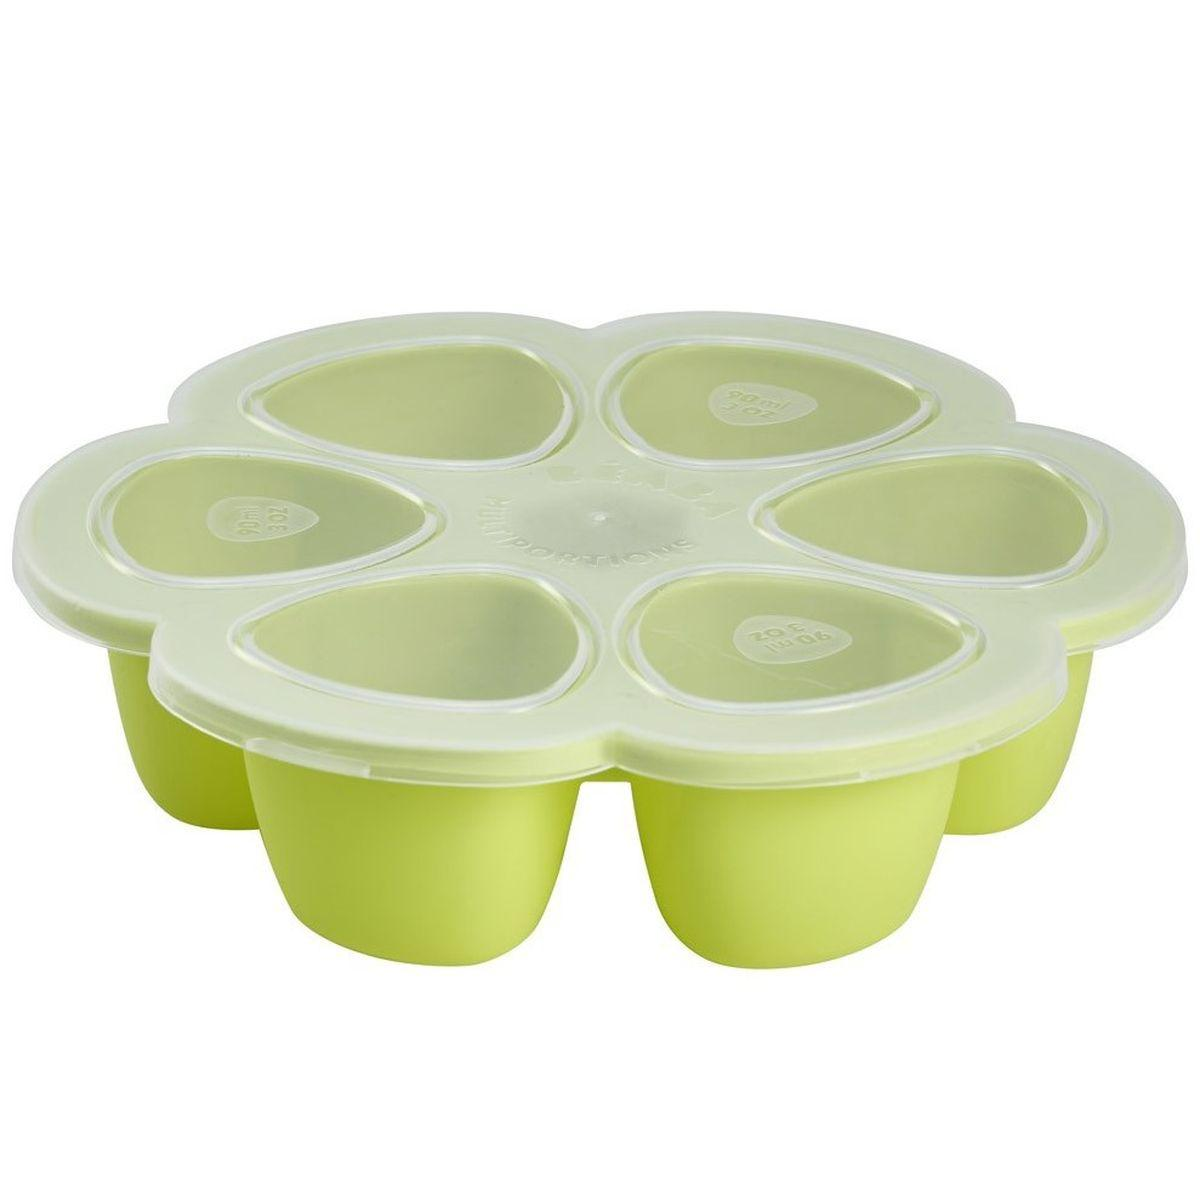 Multiportions silicone 6x90ml Beaba neon